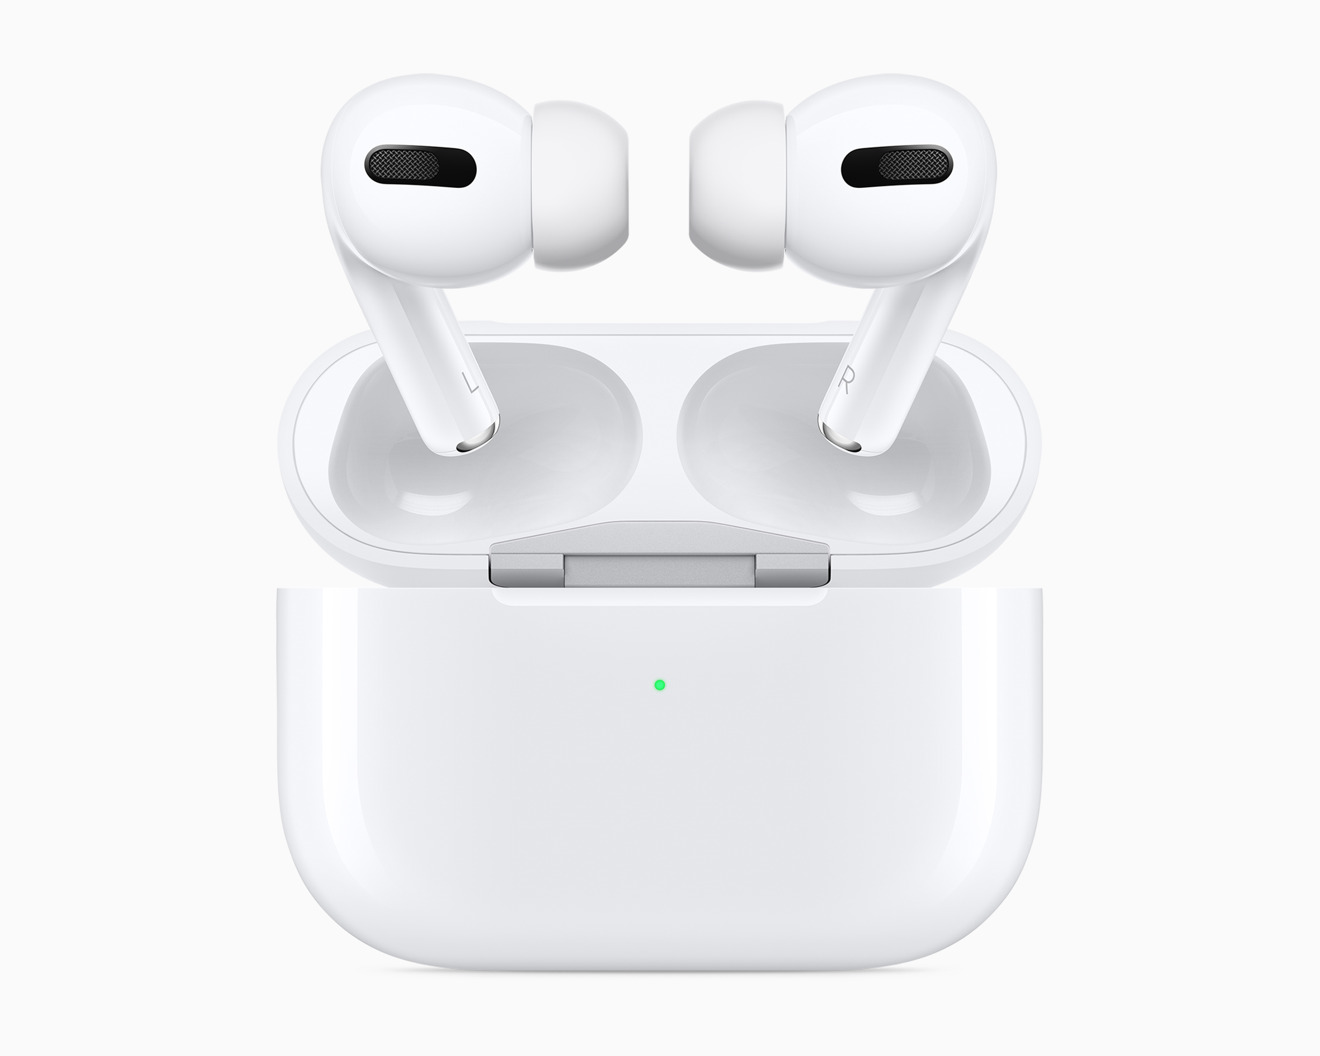 The AirPods Pro in the new Wireless Charging Case